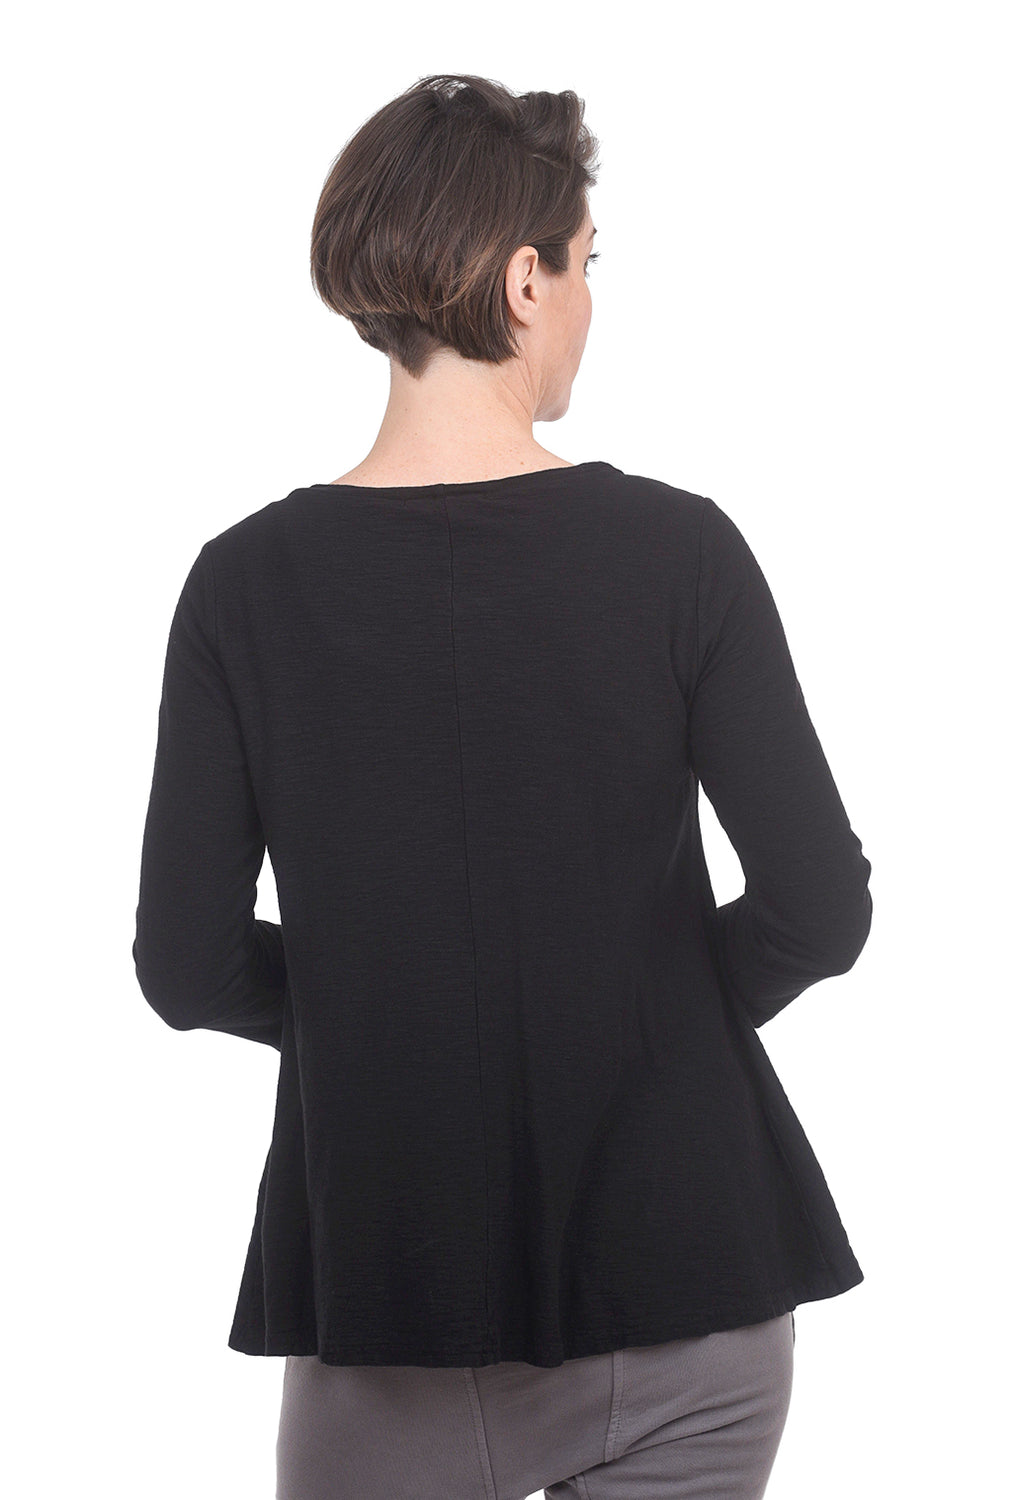 Cut Loose LJ Peplum Tee, Black